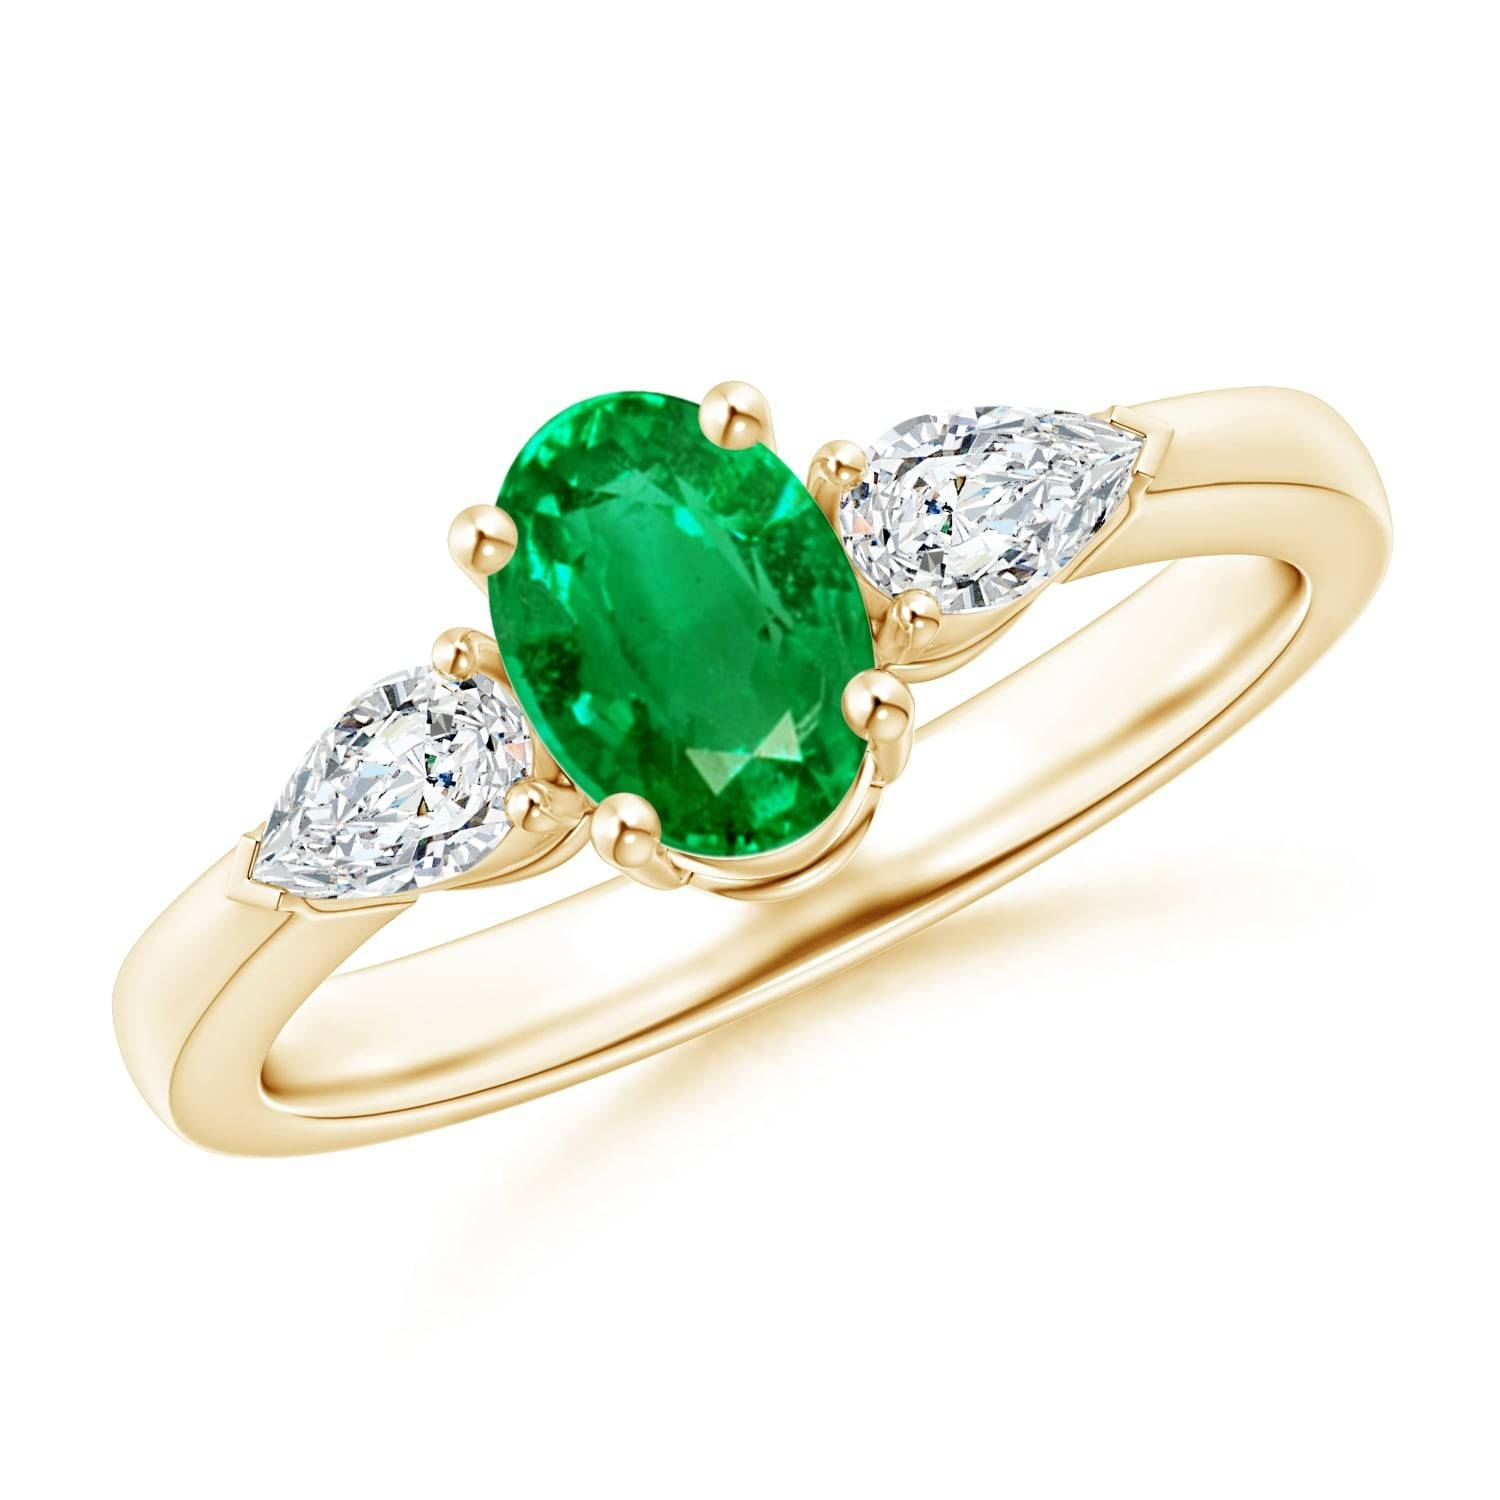 Four Prong Three Stone Oval Emerald And Diamond Ring | Angara Intended For Oval Emerald Engagement Rings (Gallery 10 of 15)